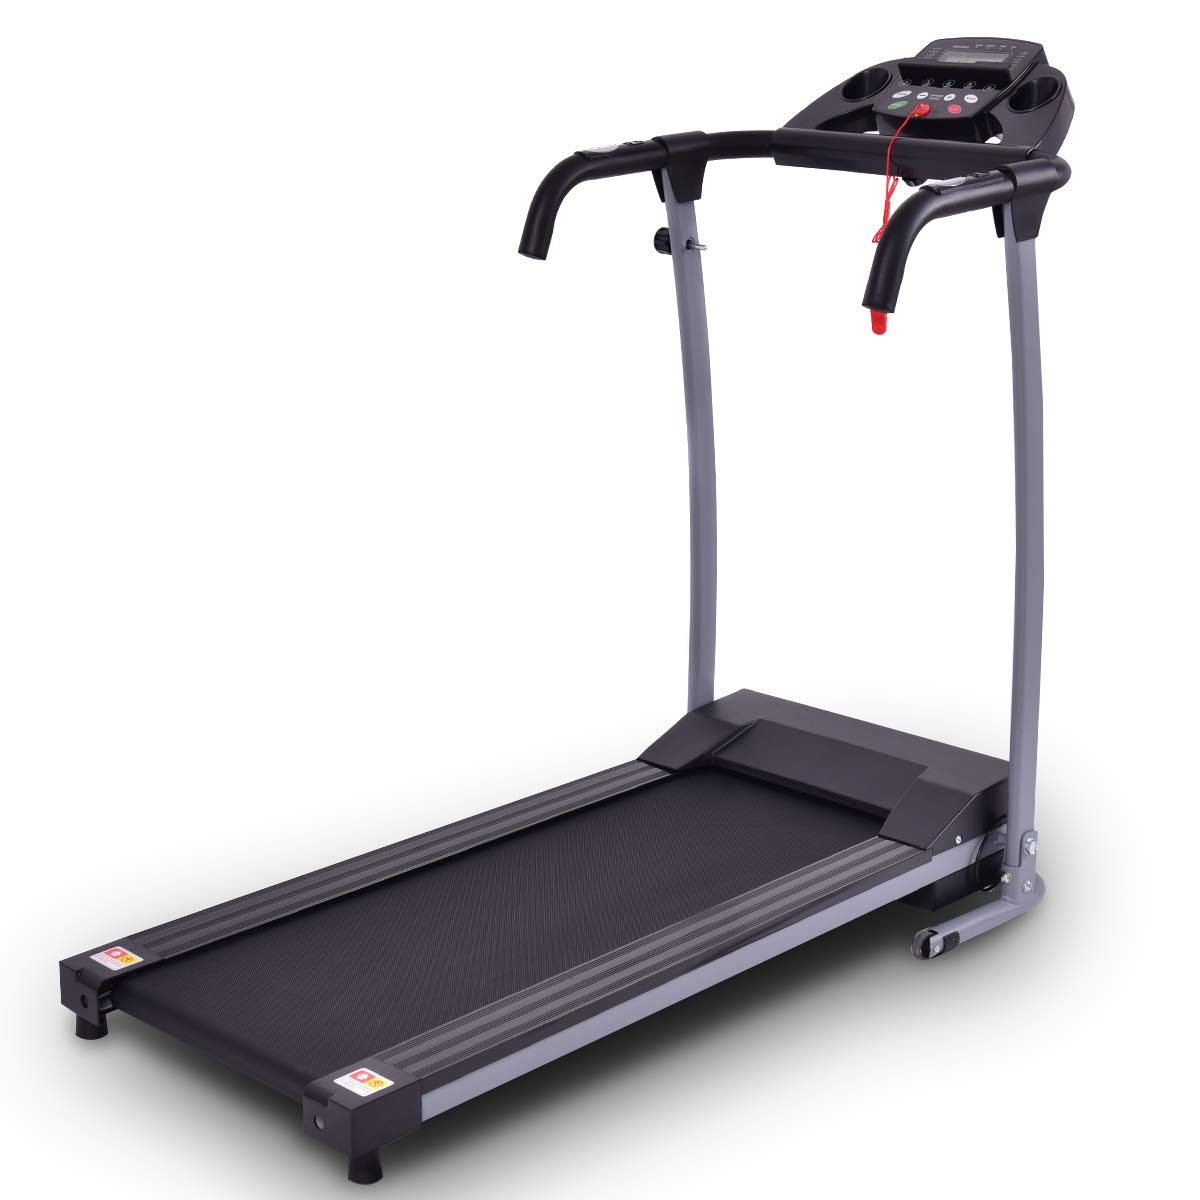 Goplus 800W Folding Treadmill Electric Motorized Power Fitness Running Machine with LED Display and Mobile Phone Holder Perfect for Home Use (Black) by Goplus (Image #1)